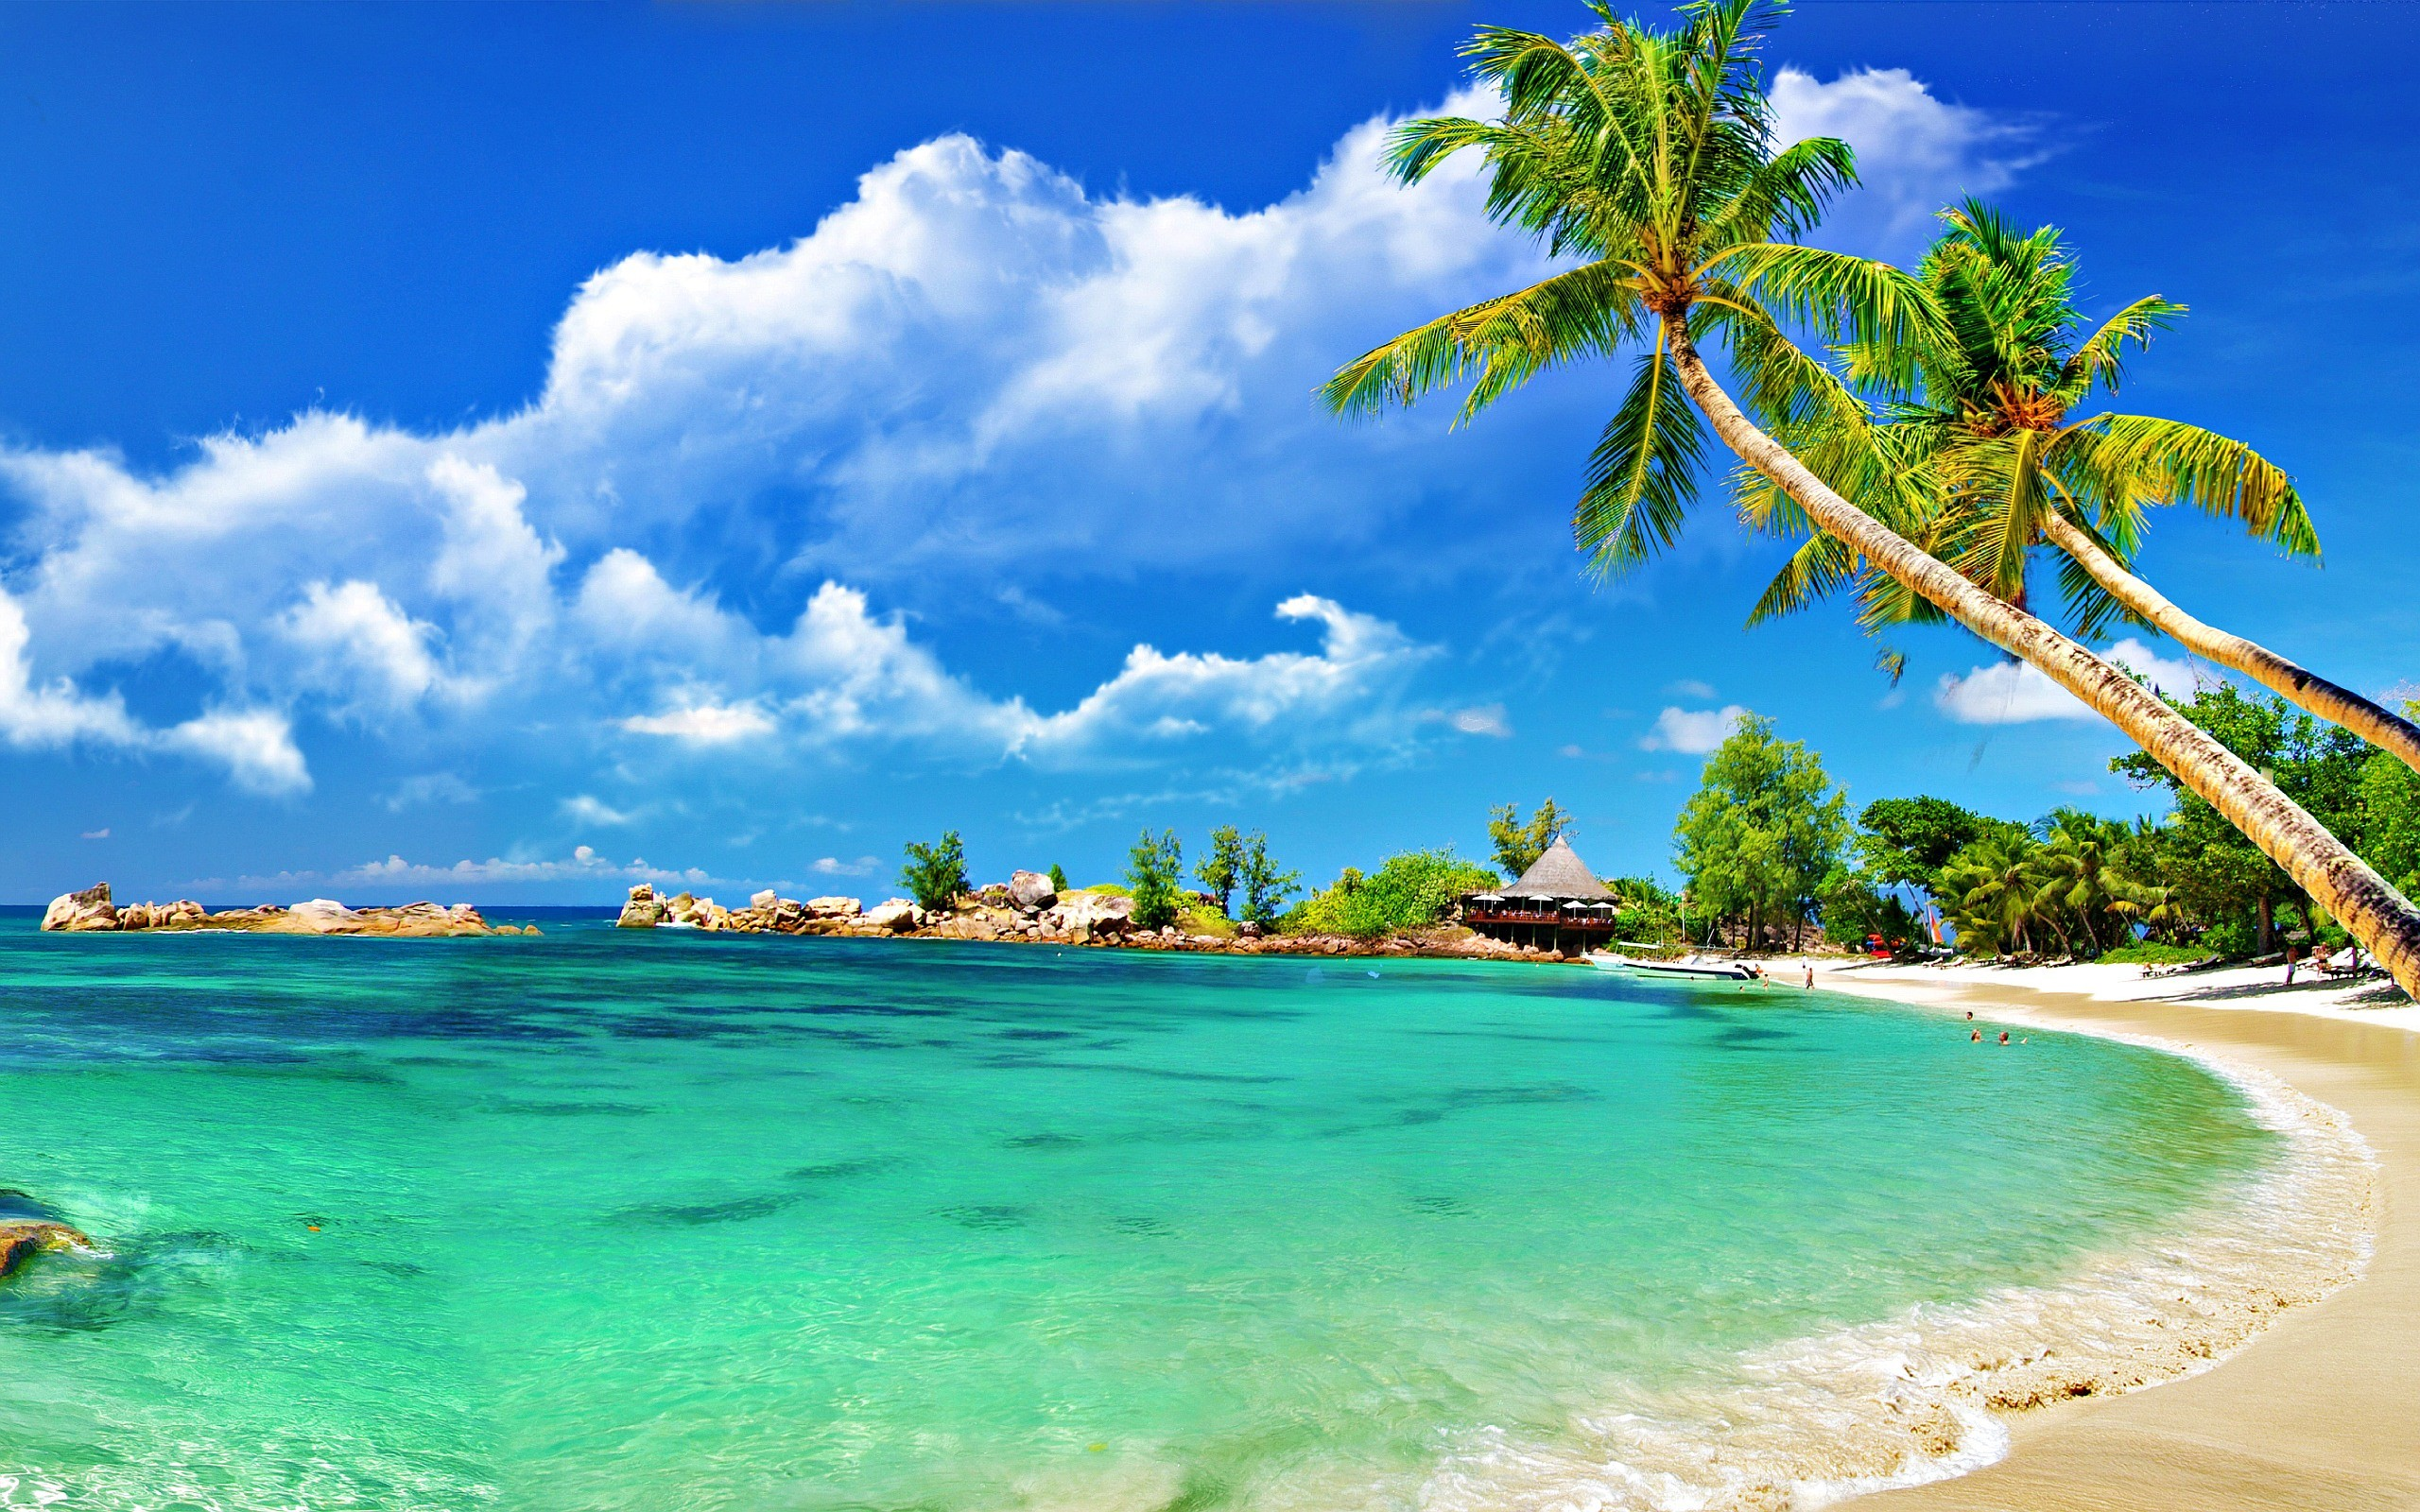 2560x1600 50 AMAZING BEACH WALLPAPERS FREE TO DOWNLOAD